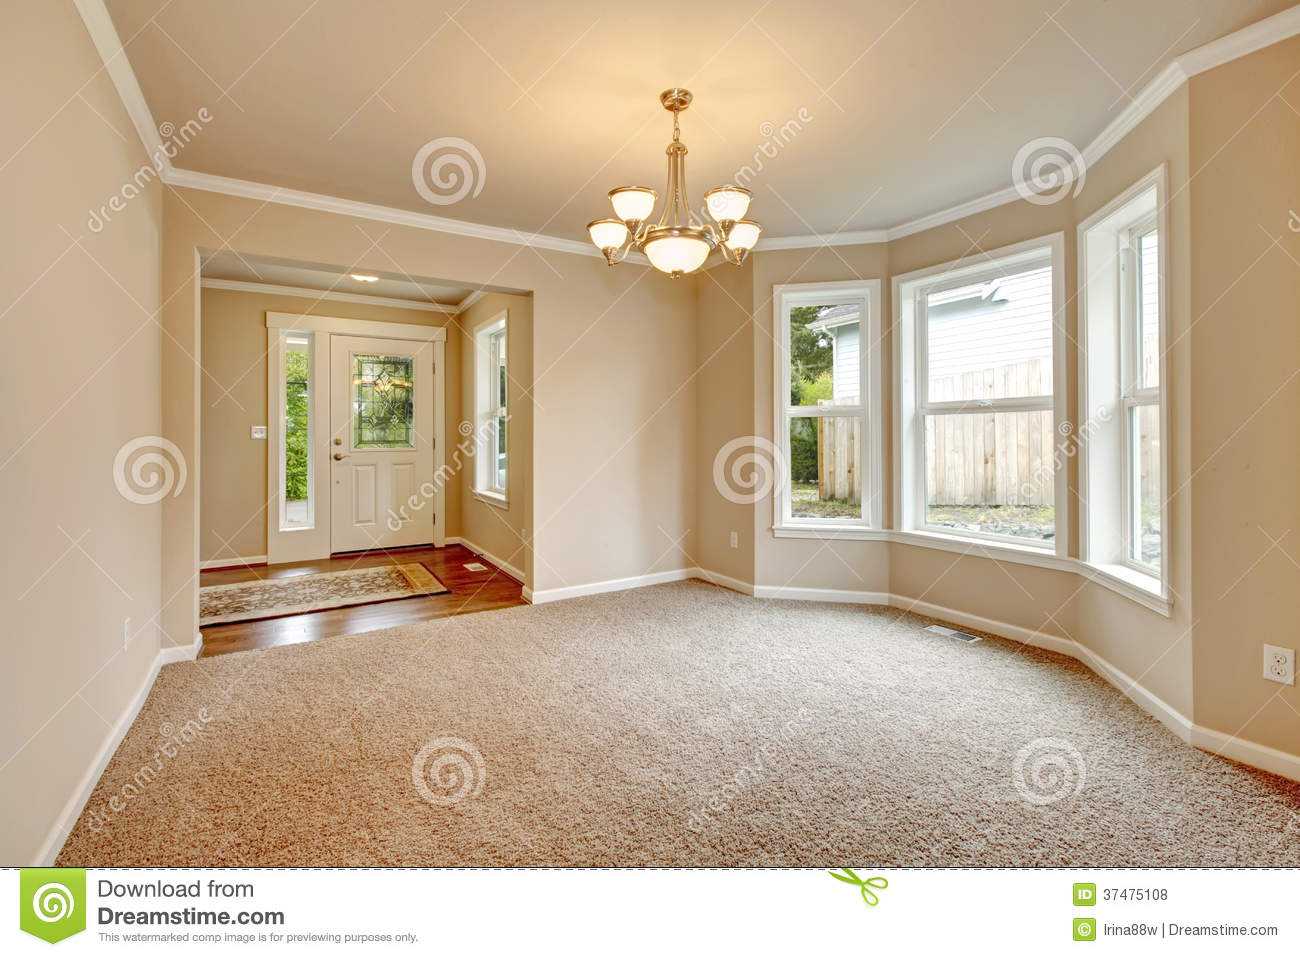 Soft Colors Empty Room With Angled Wall Royalty Free Stock